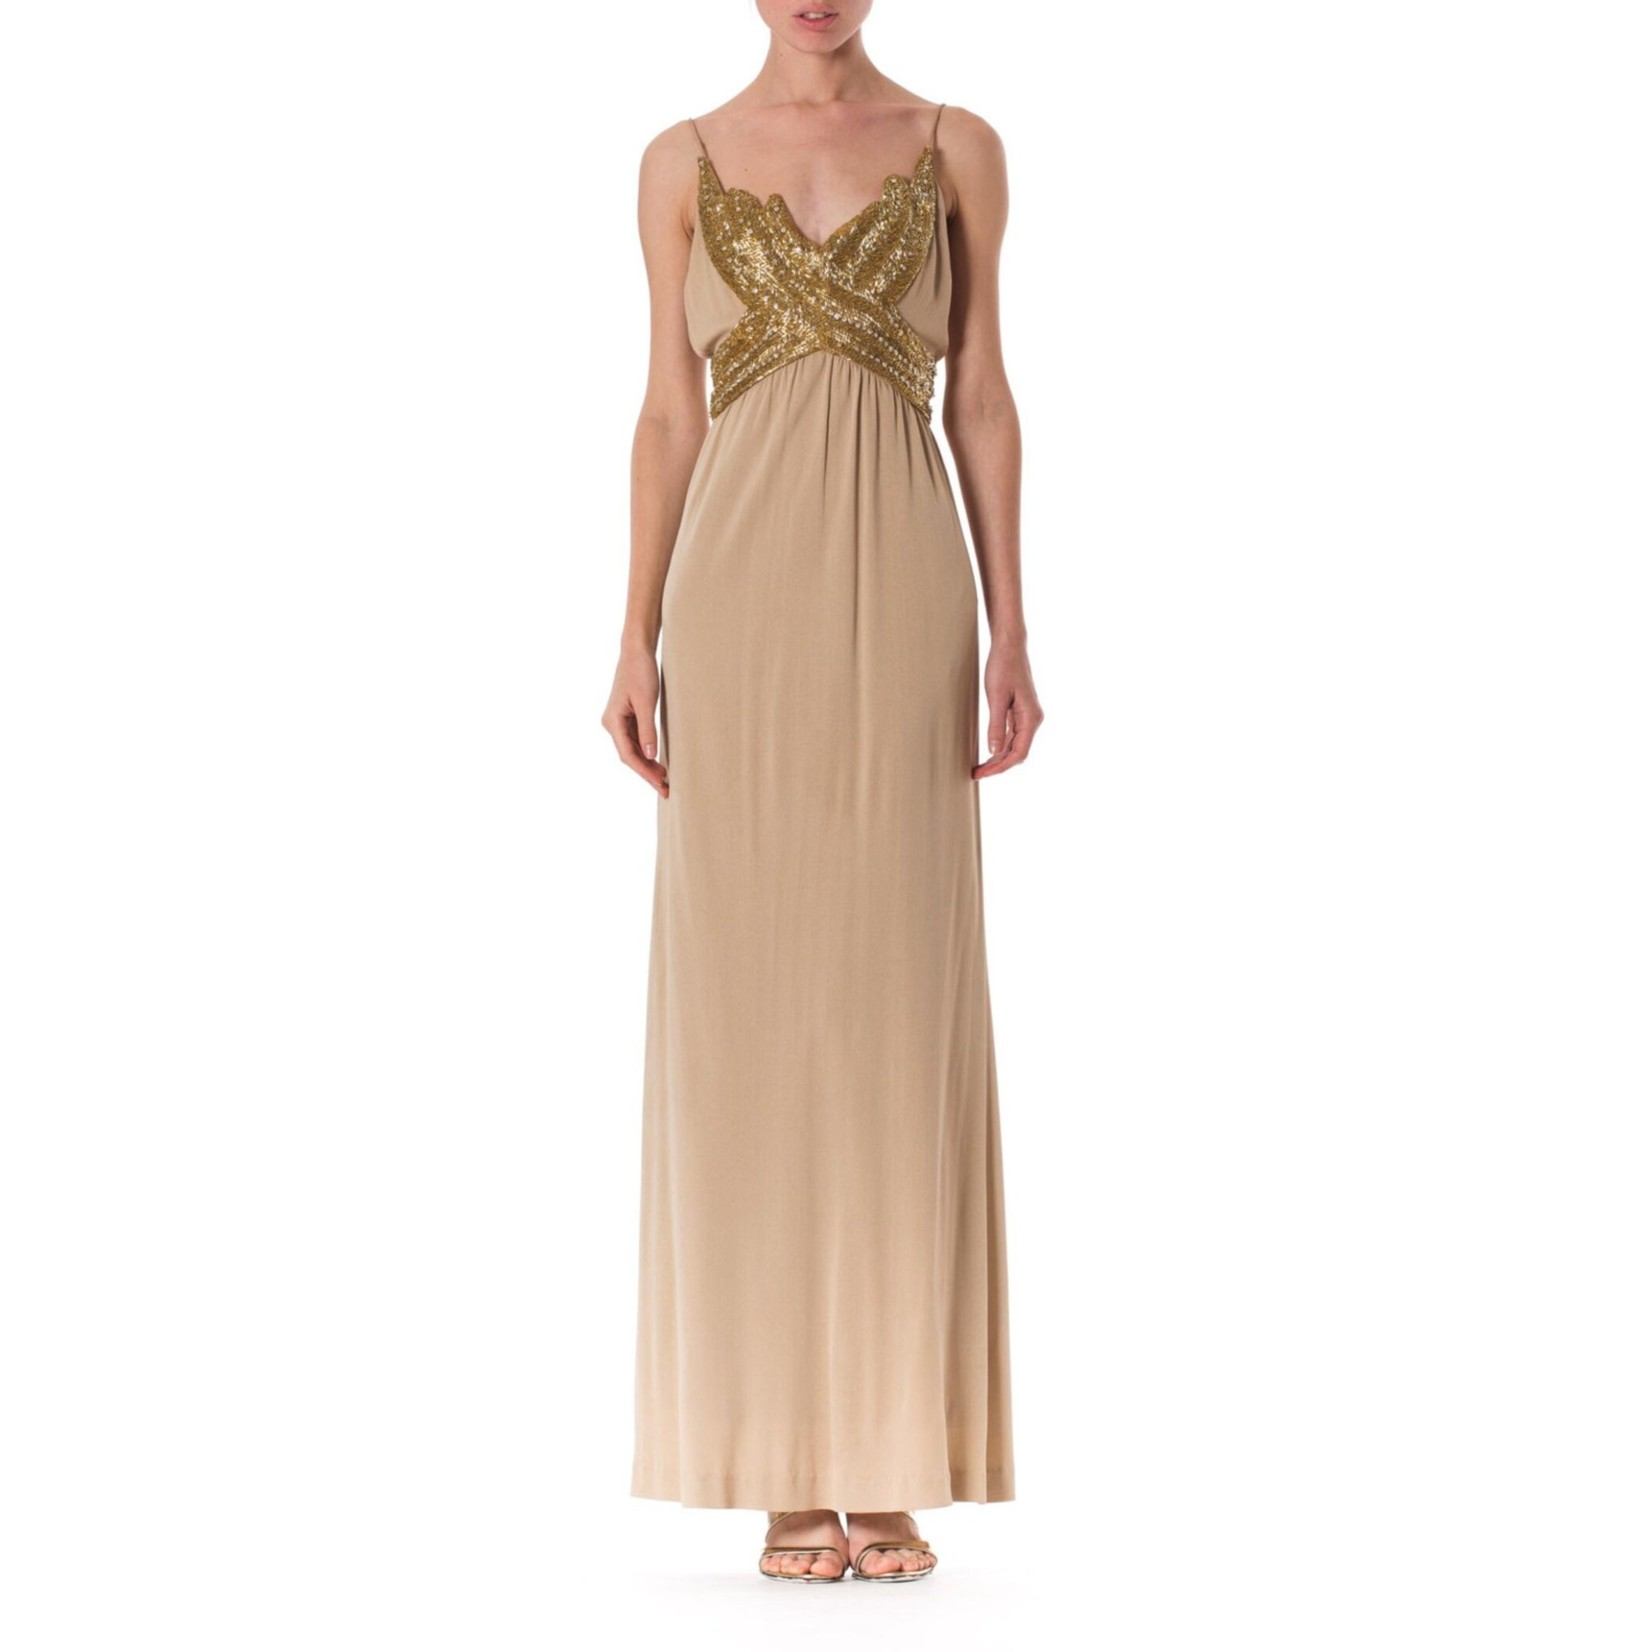 Morphew 1970s Champagne & Gold Silk Jersey Gown